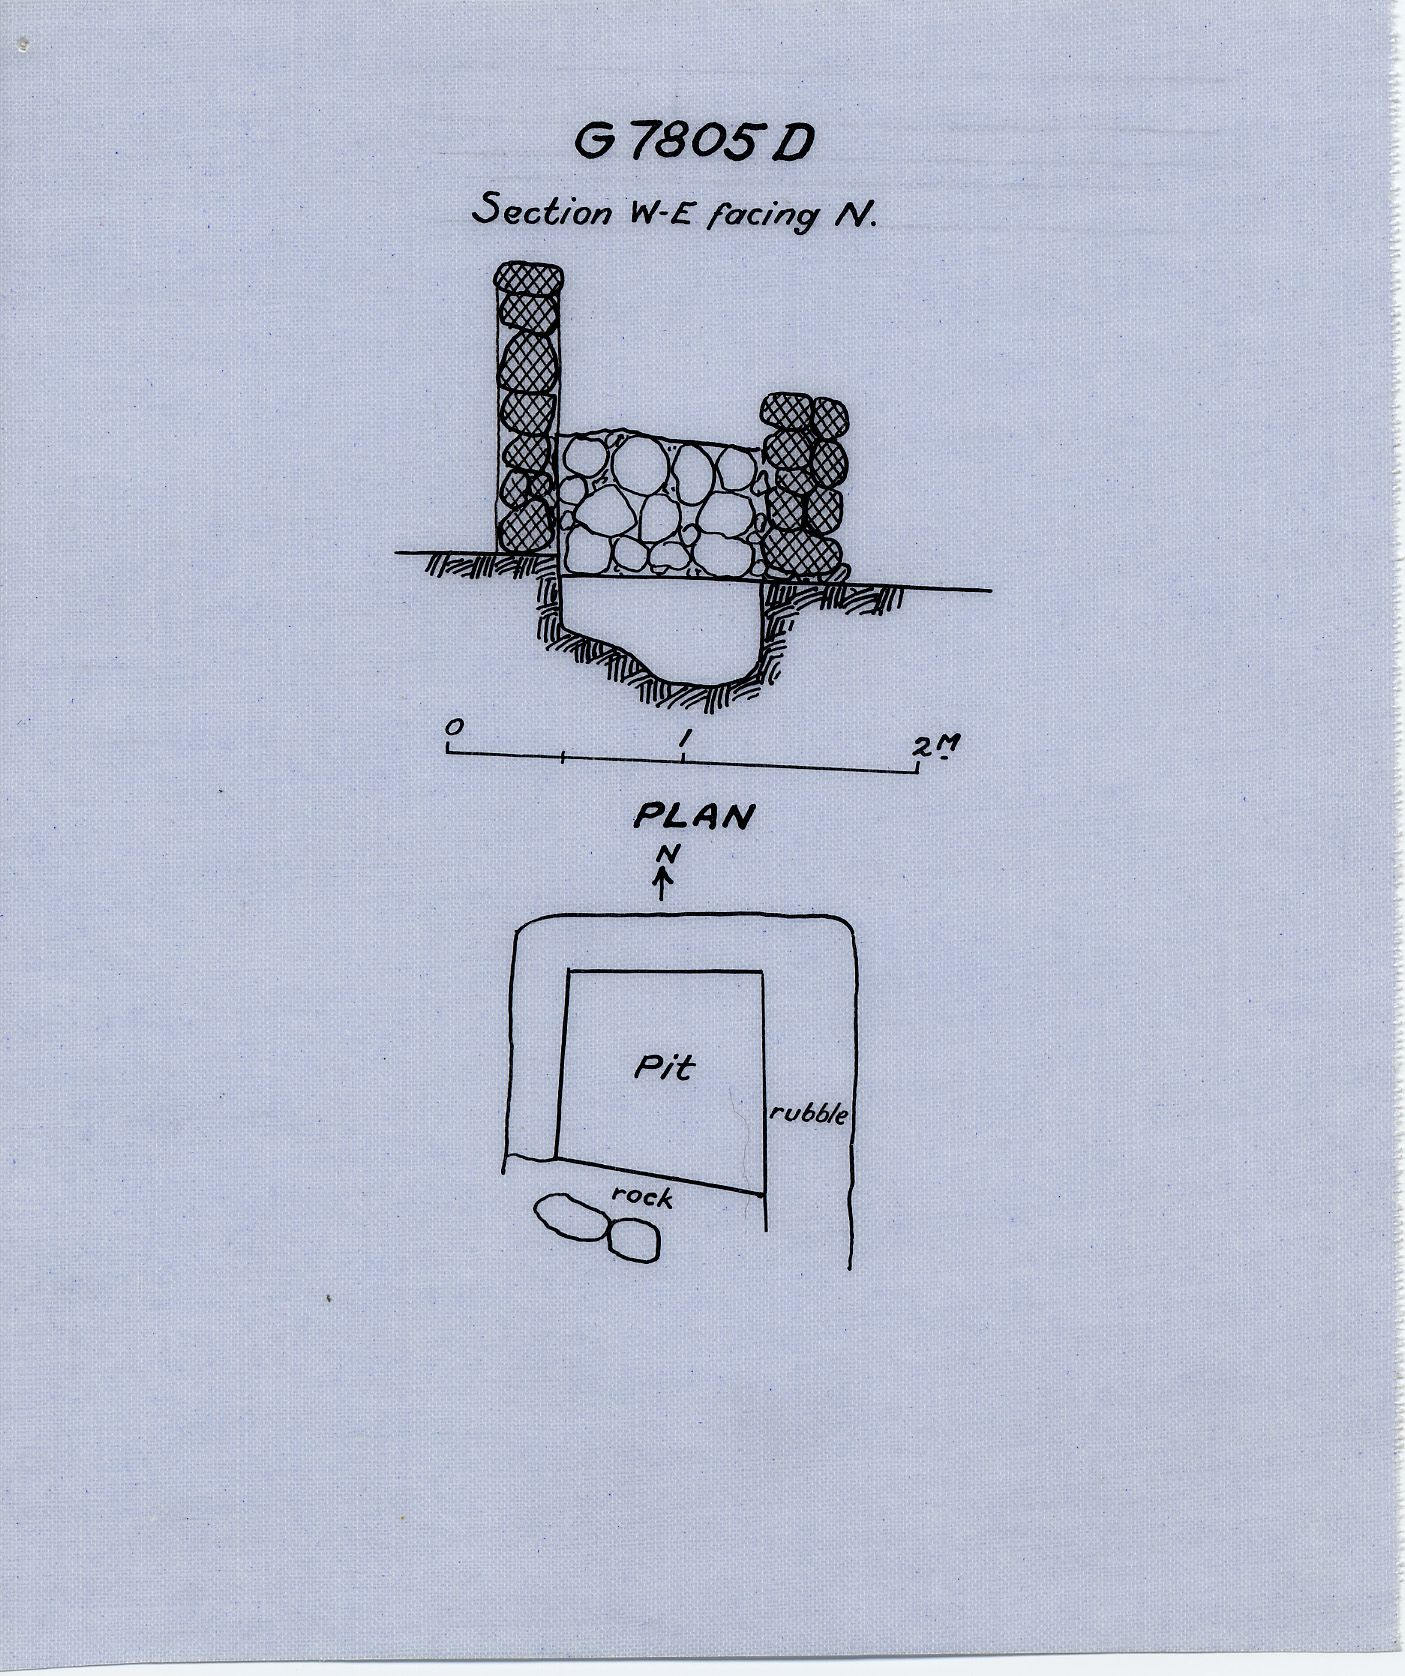 Maps and plans: G 7805, Shaft D